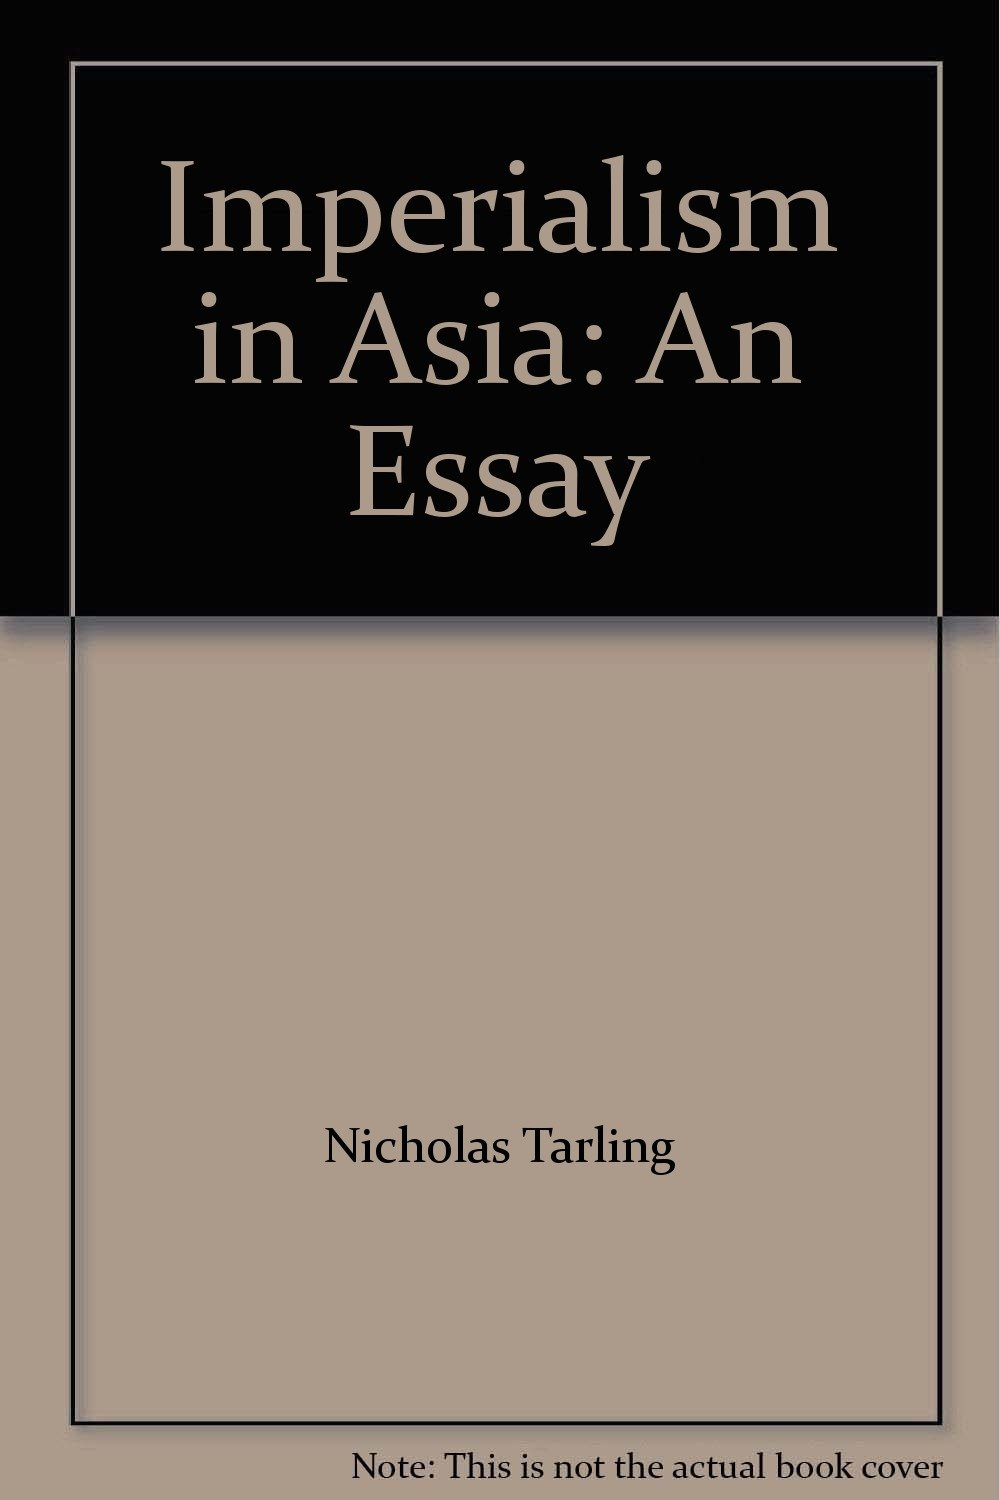 imperialism in asia essay